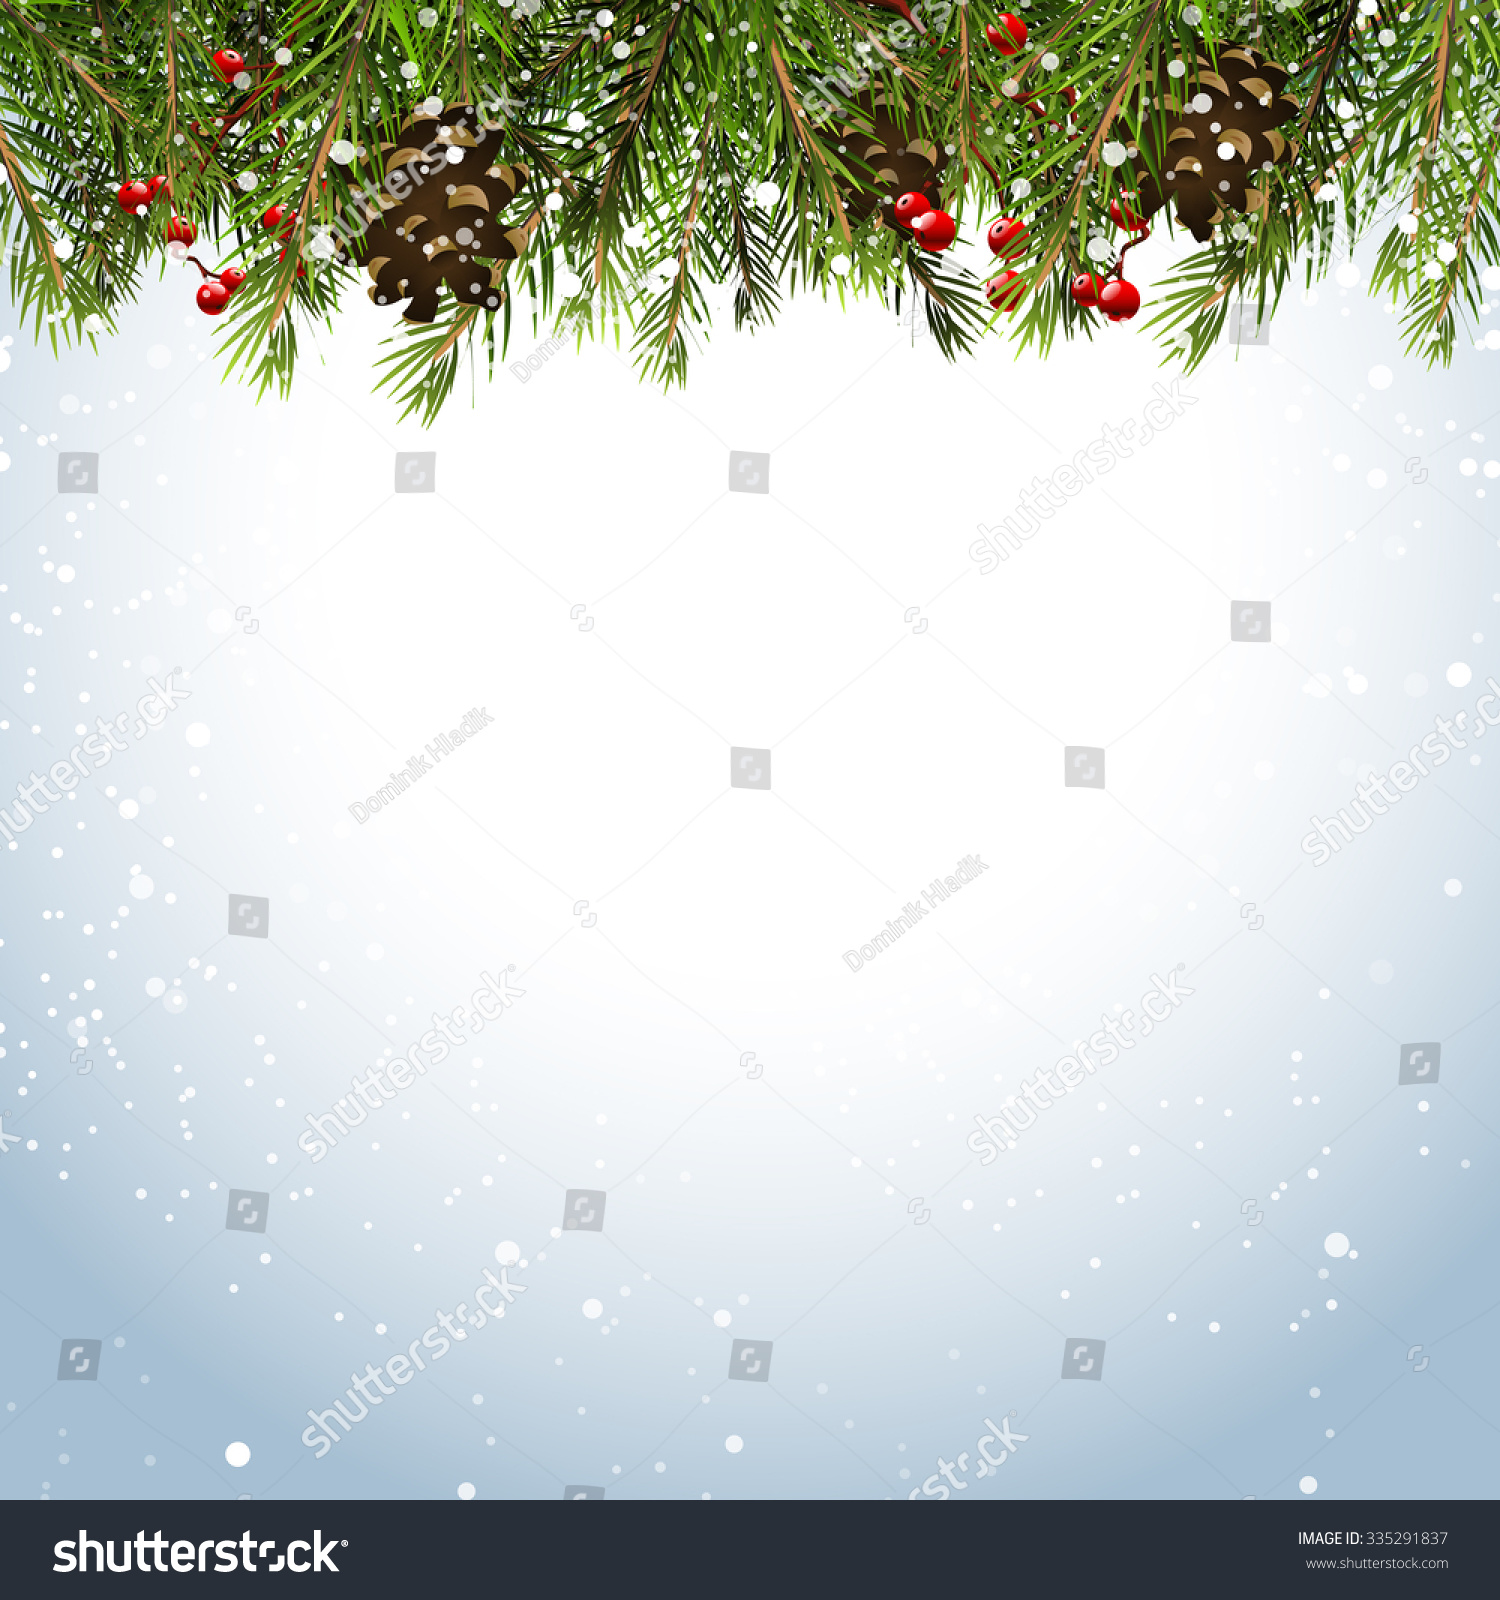 Christmas Background Branchespinecones Berries Stock